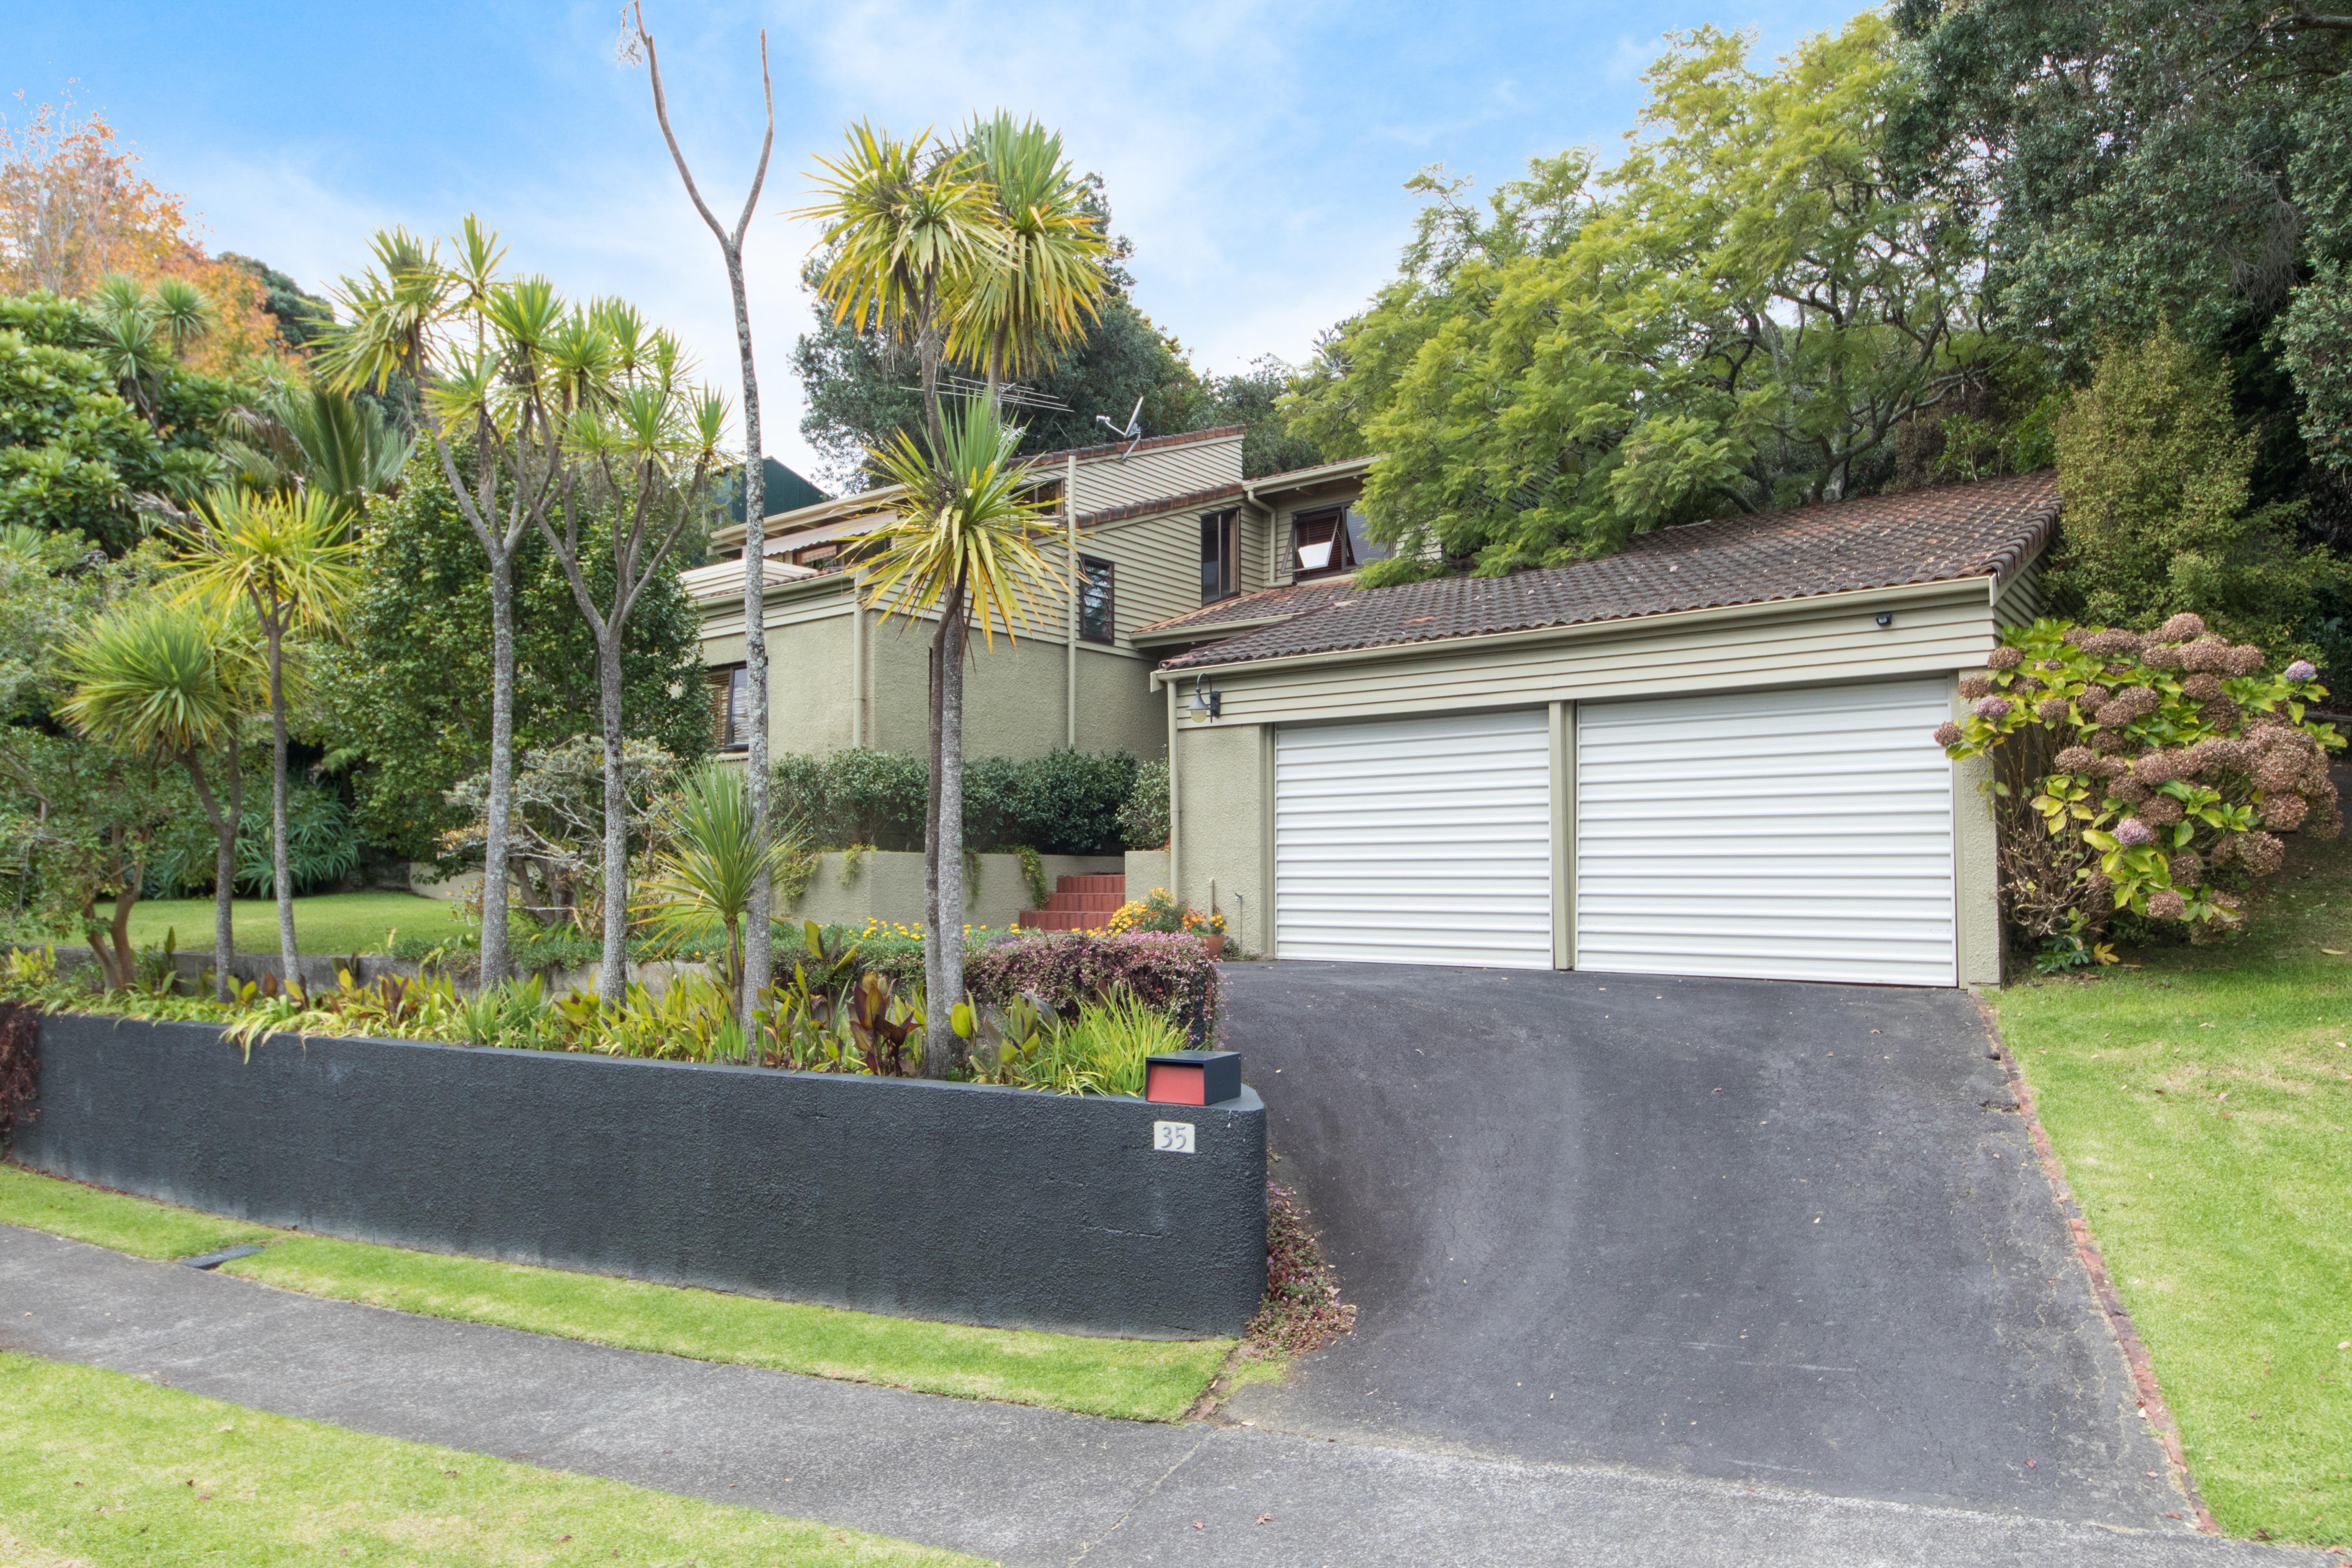 59135Open home times